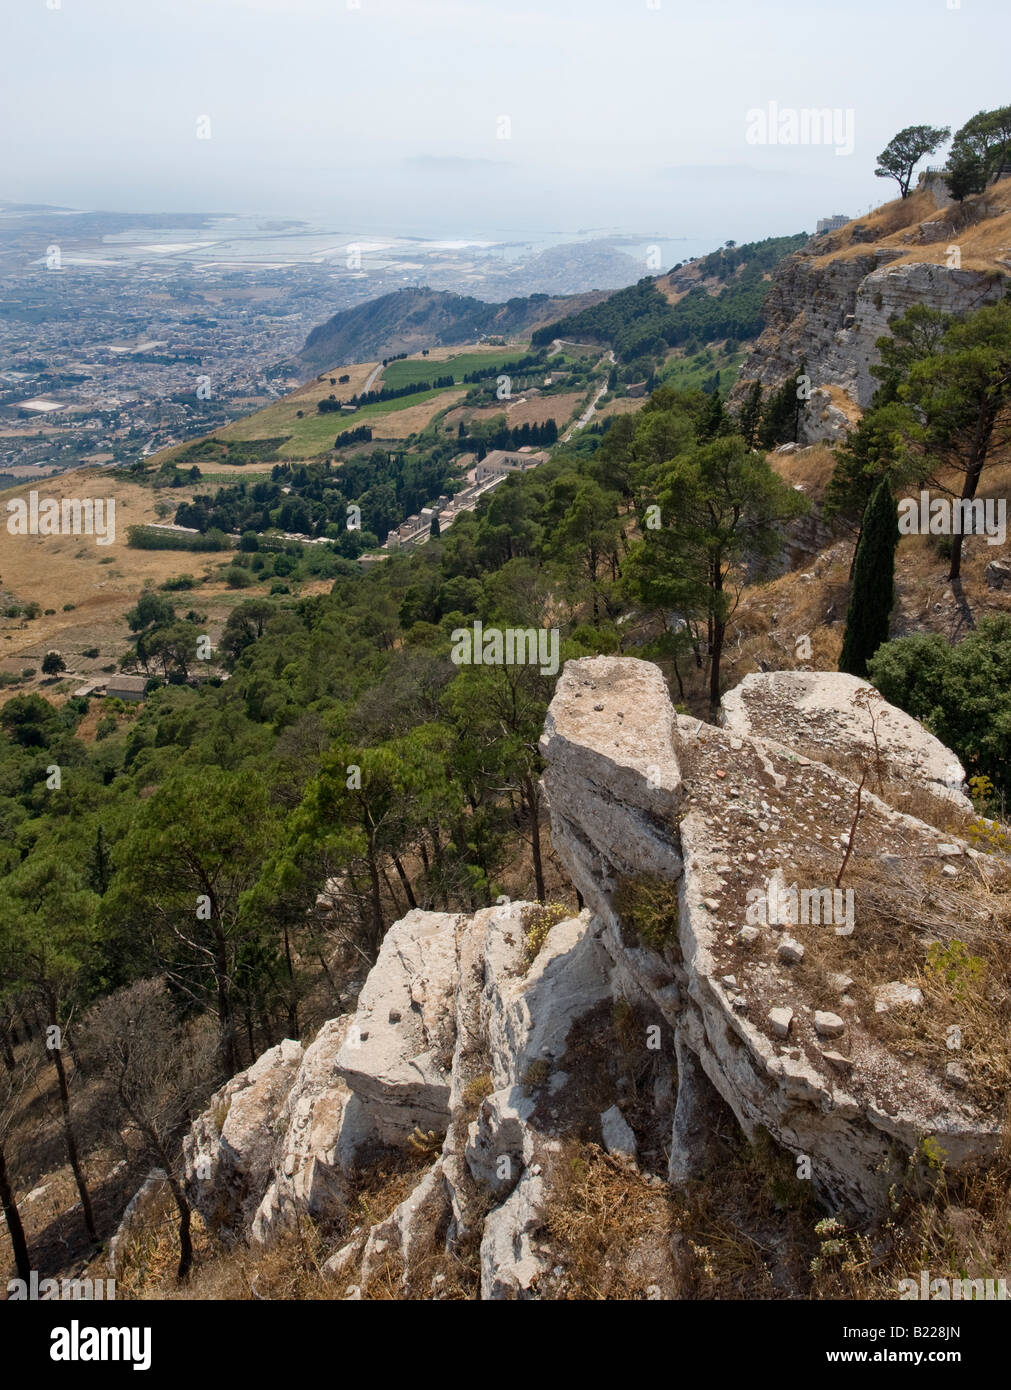 View of Trapani from the hilltown of Erice - Stock Image